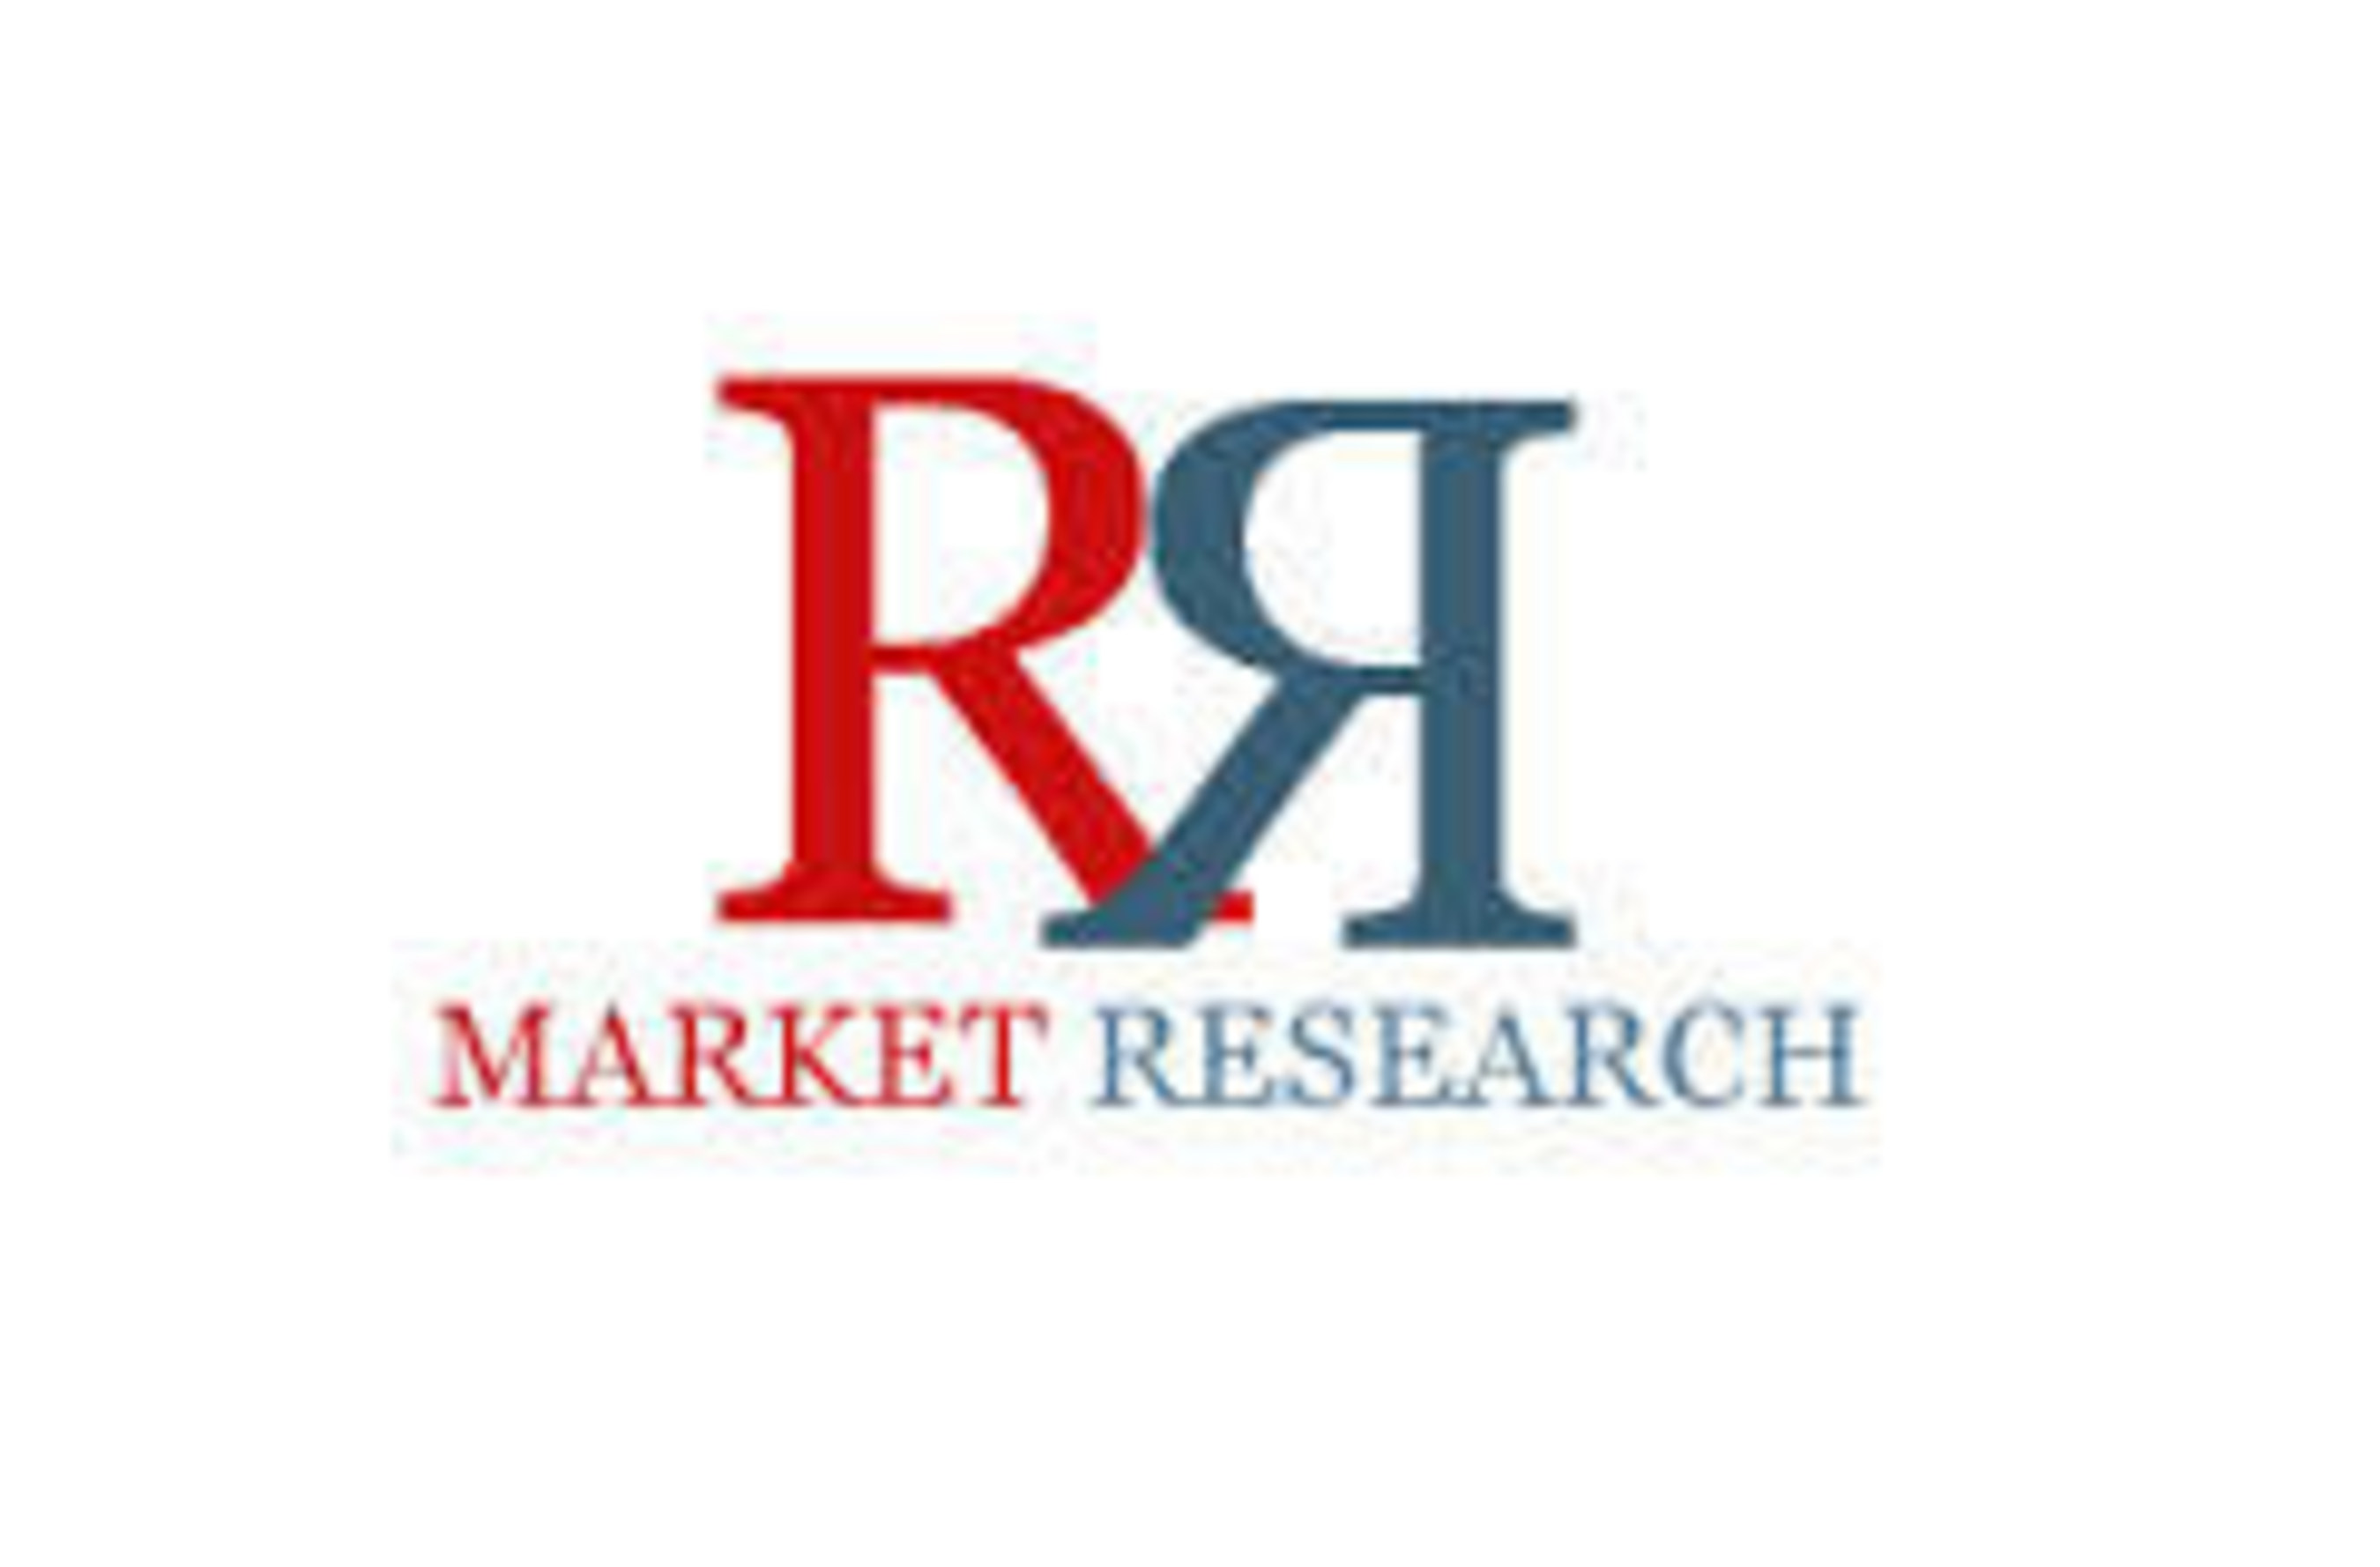 Interactive Display Market to Grow at 11.9% CAGR to 2020 With Interactive Monitors to Show Highest Growth Rate of 28.1%